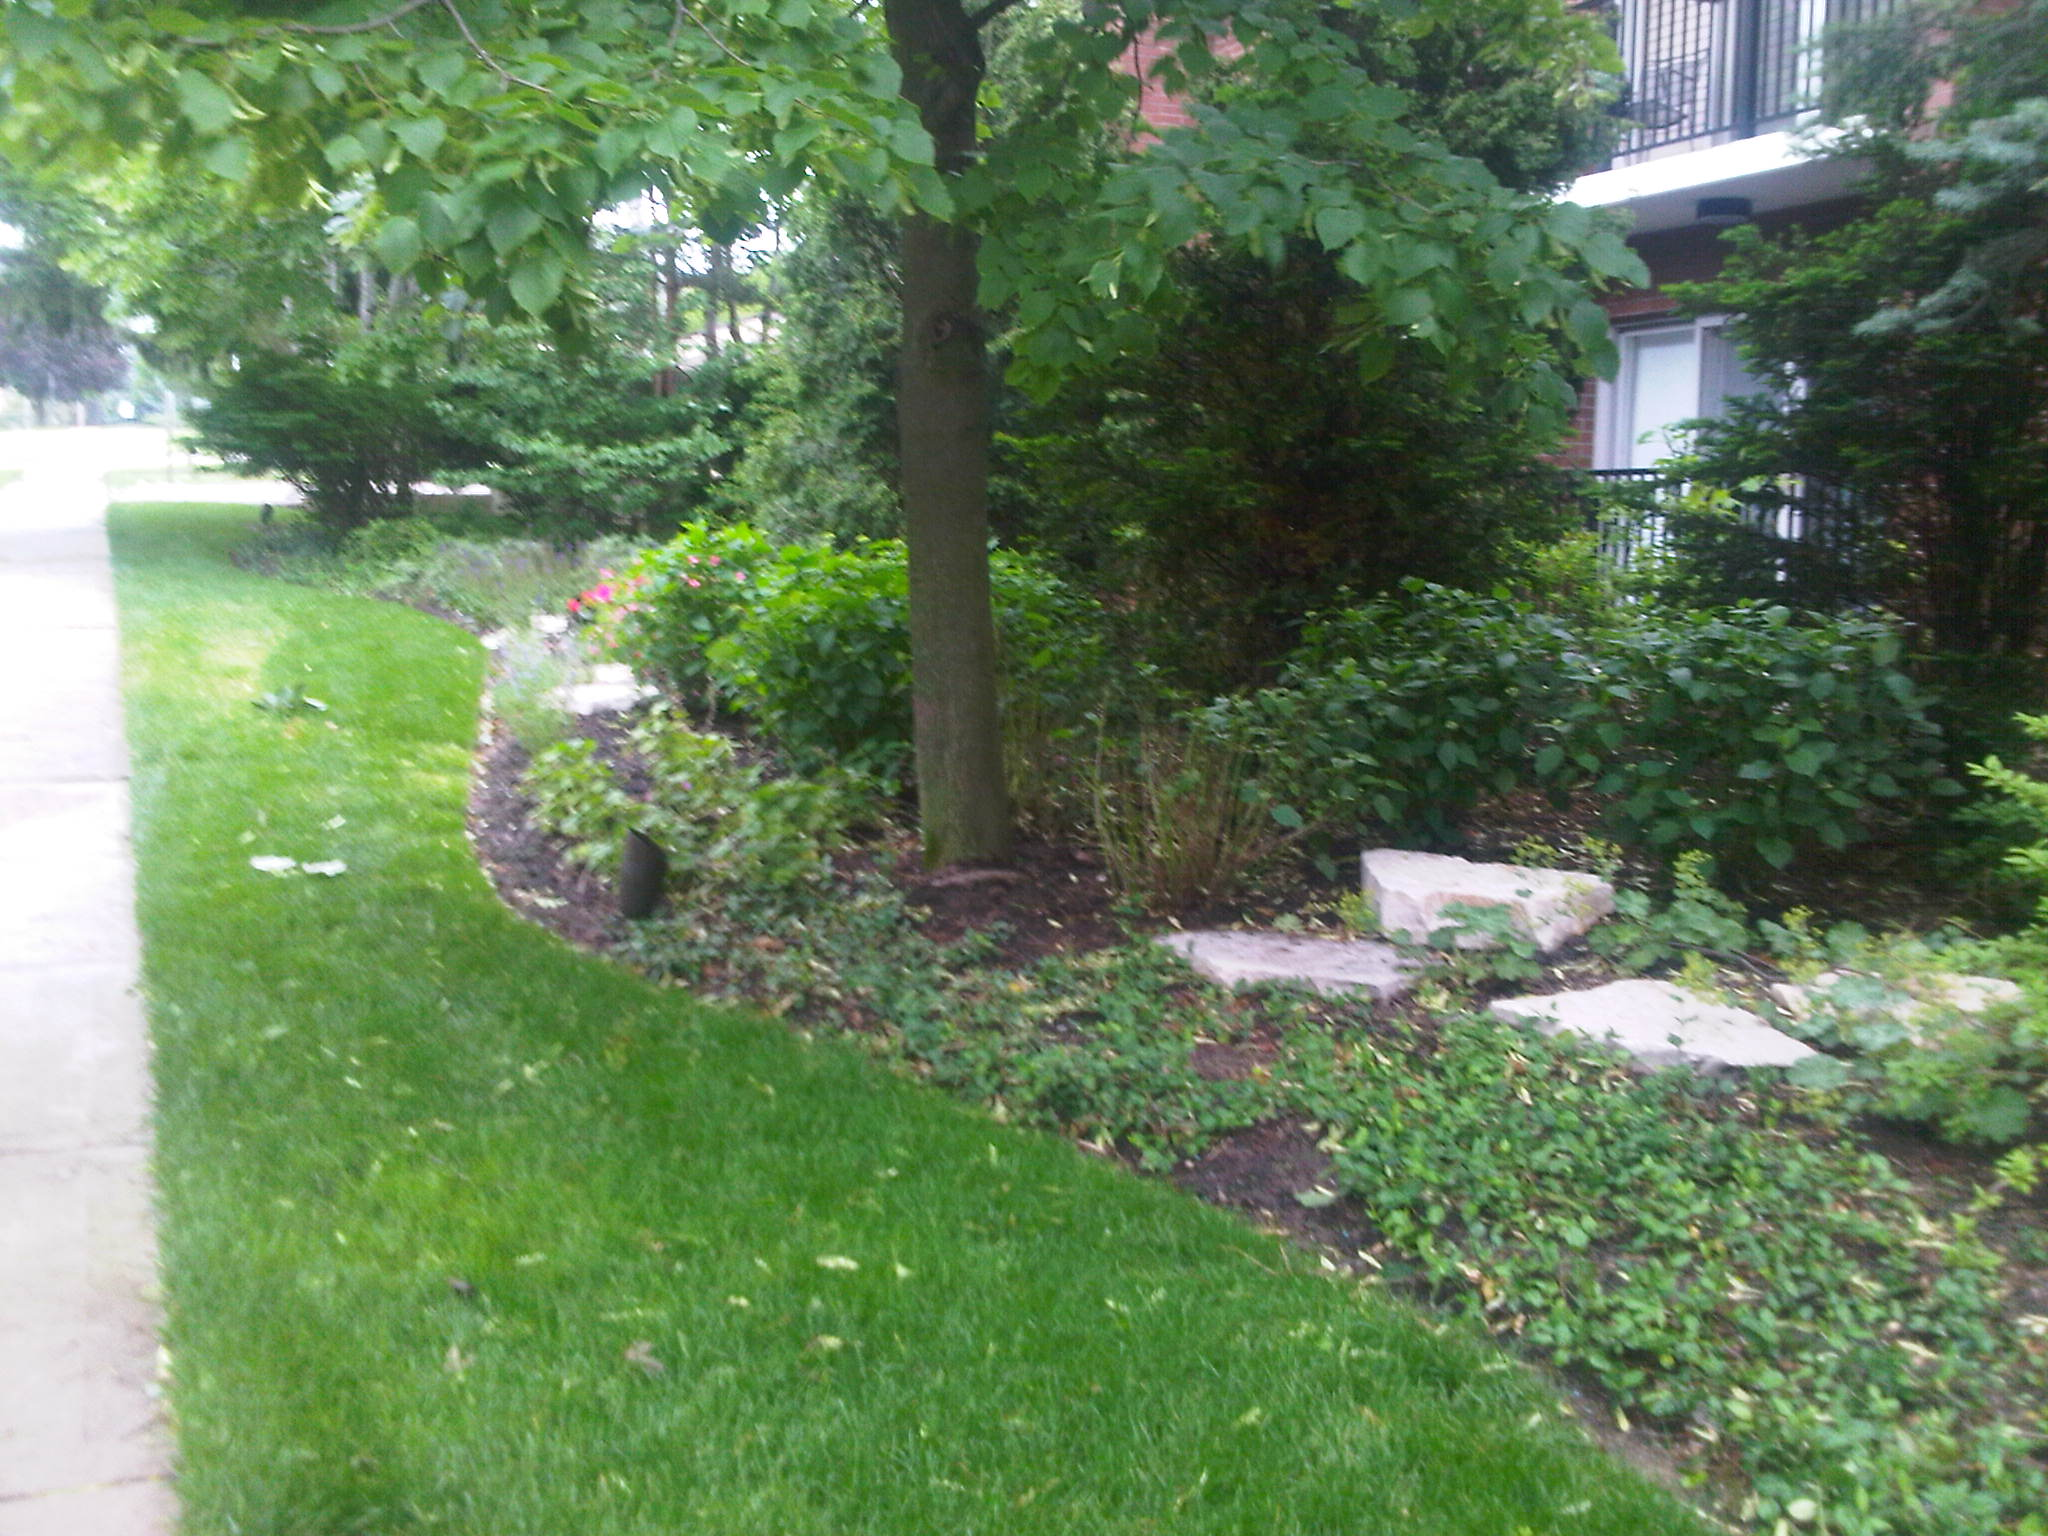 Lawn service in Northbrook, Glenview, Buffalo Grove, IL